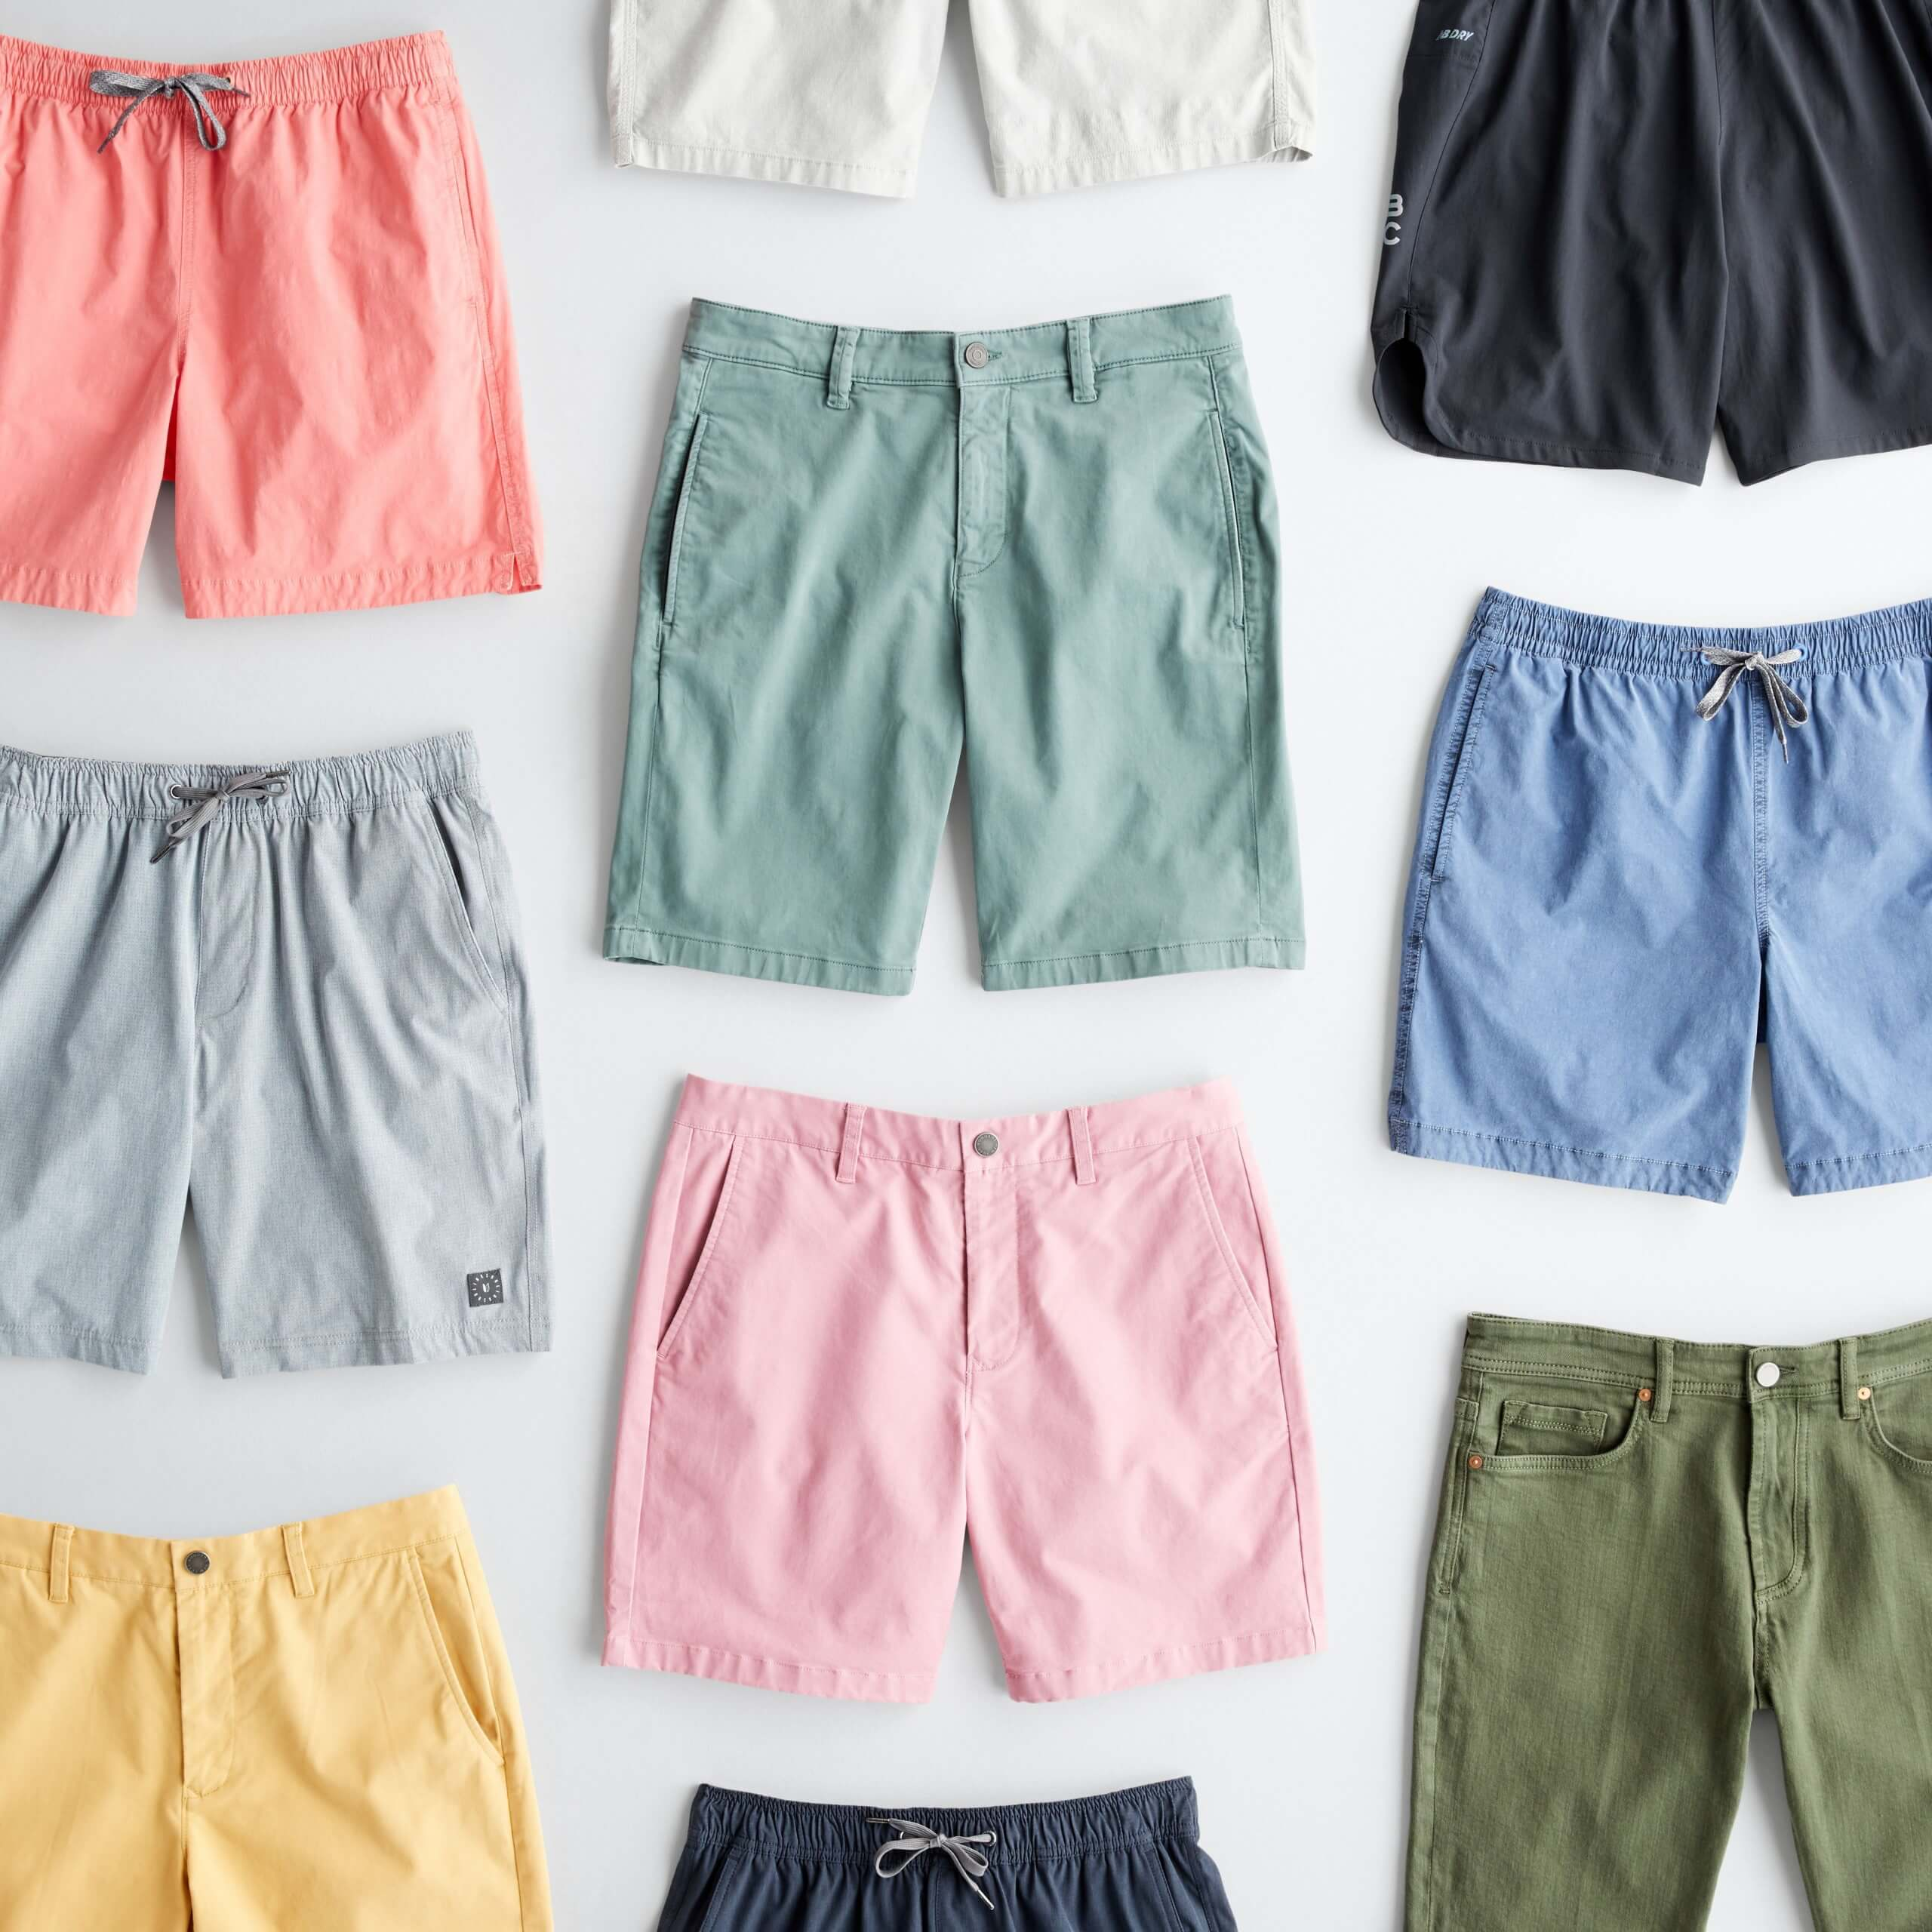 Stitch Fix Men's outfit laydown featuring multiple pairs of shorts in coral, white, green, black, blue, pink, yellow and grey.